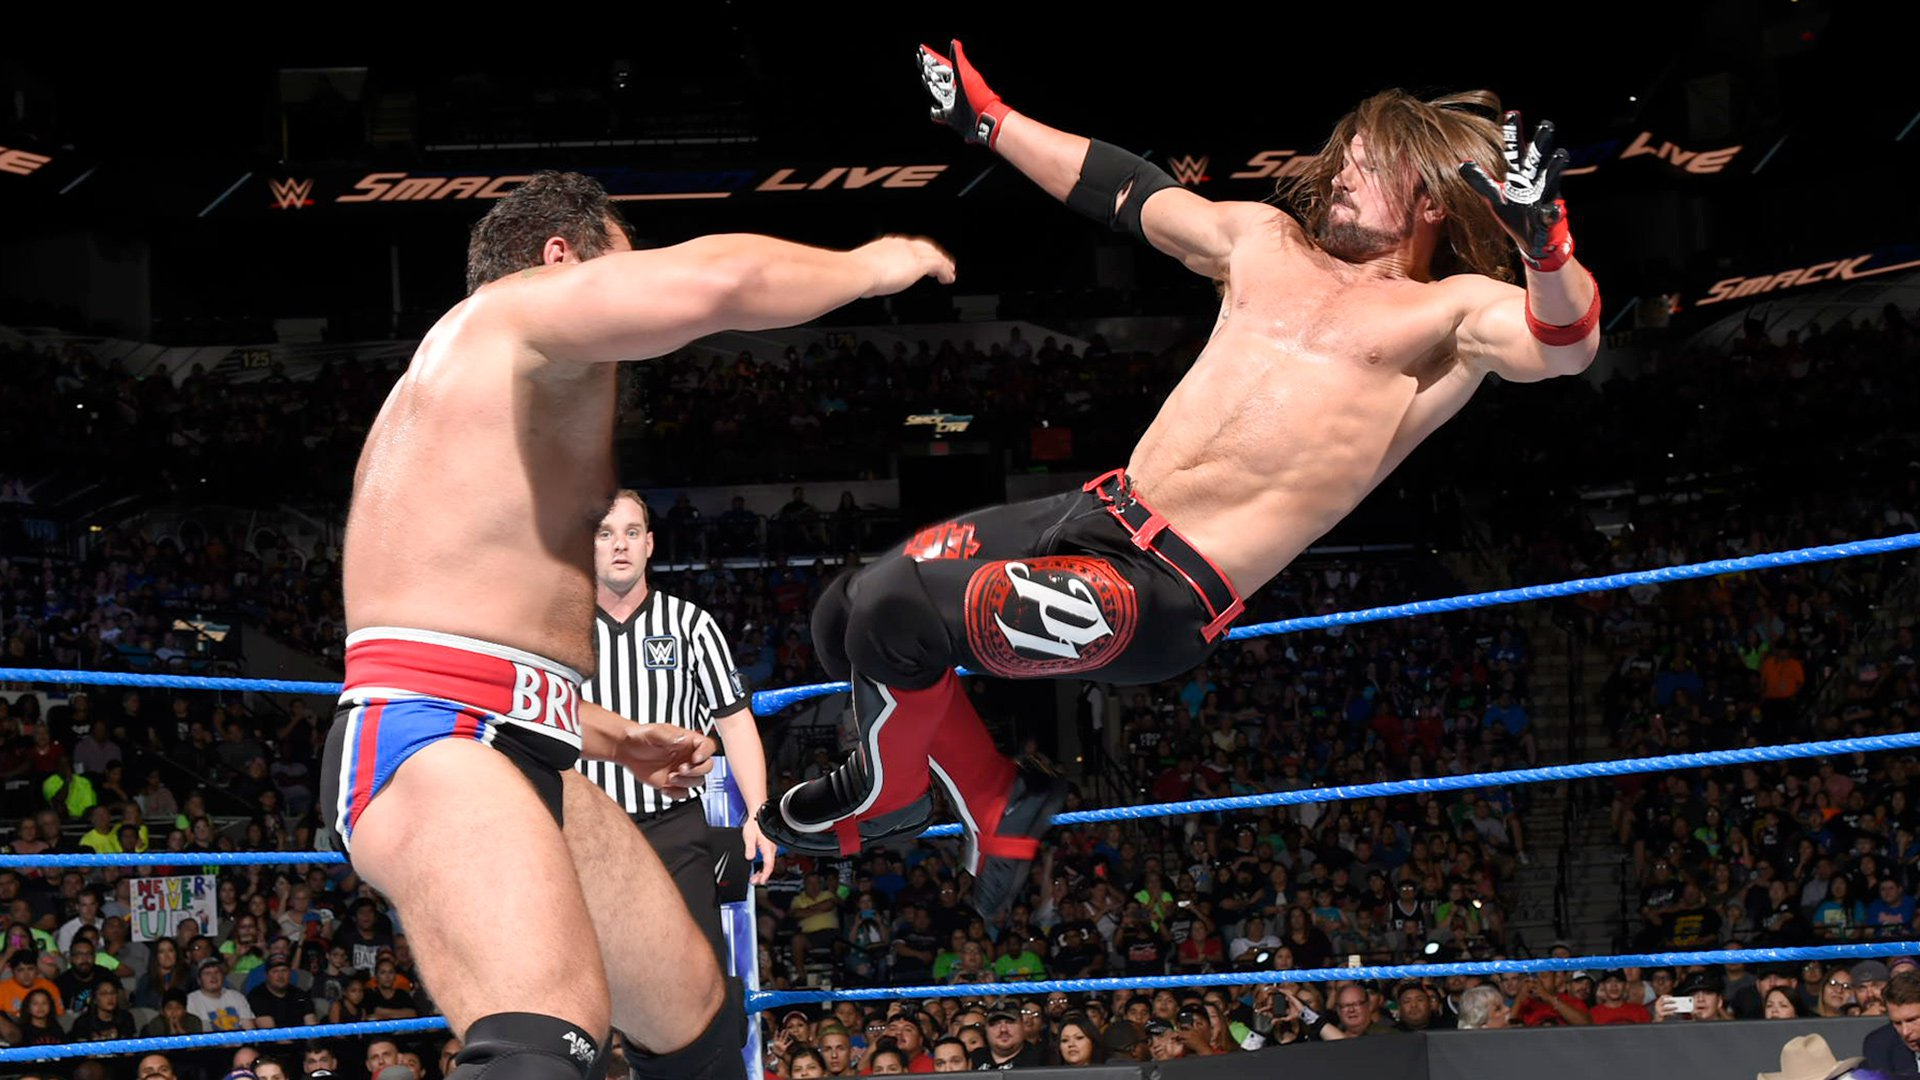 ... but Styles counters with a swift kick!